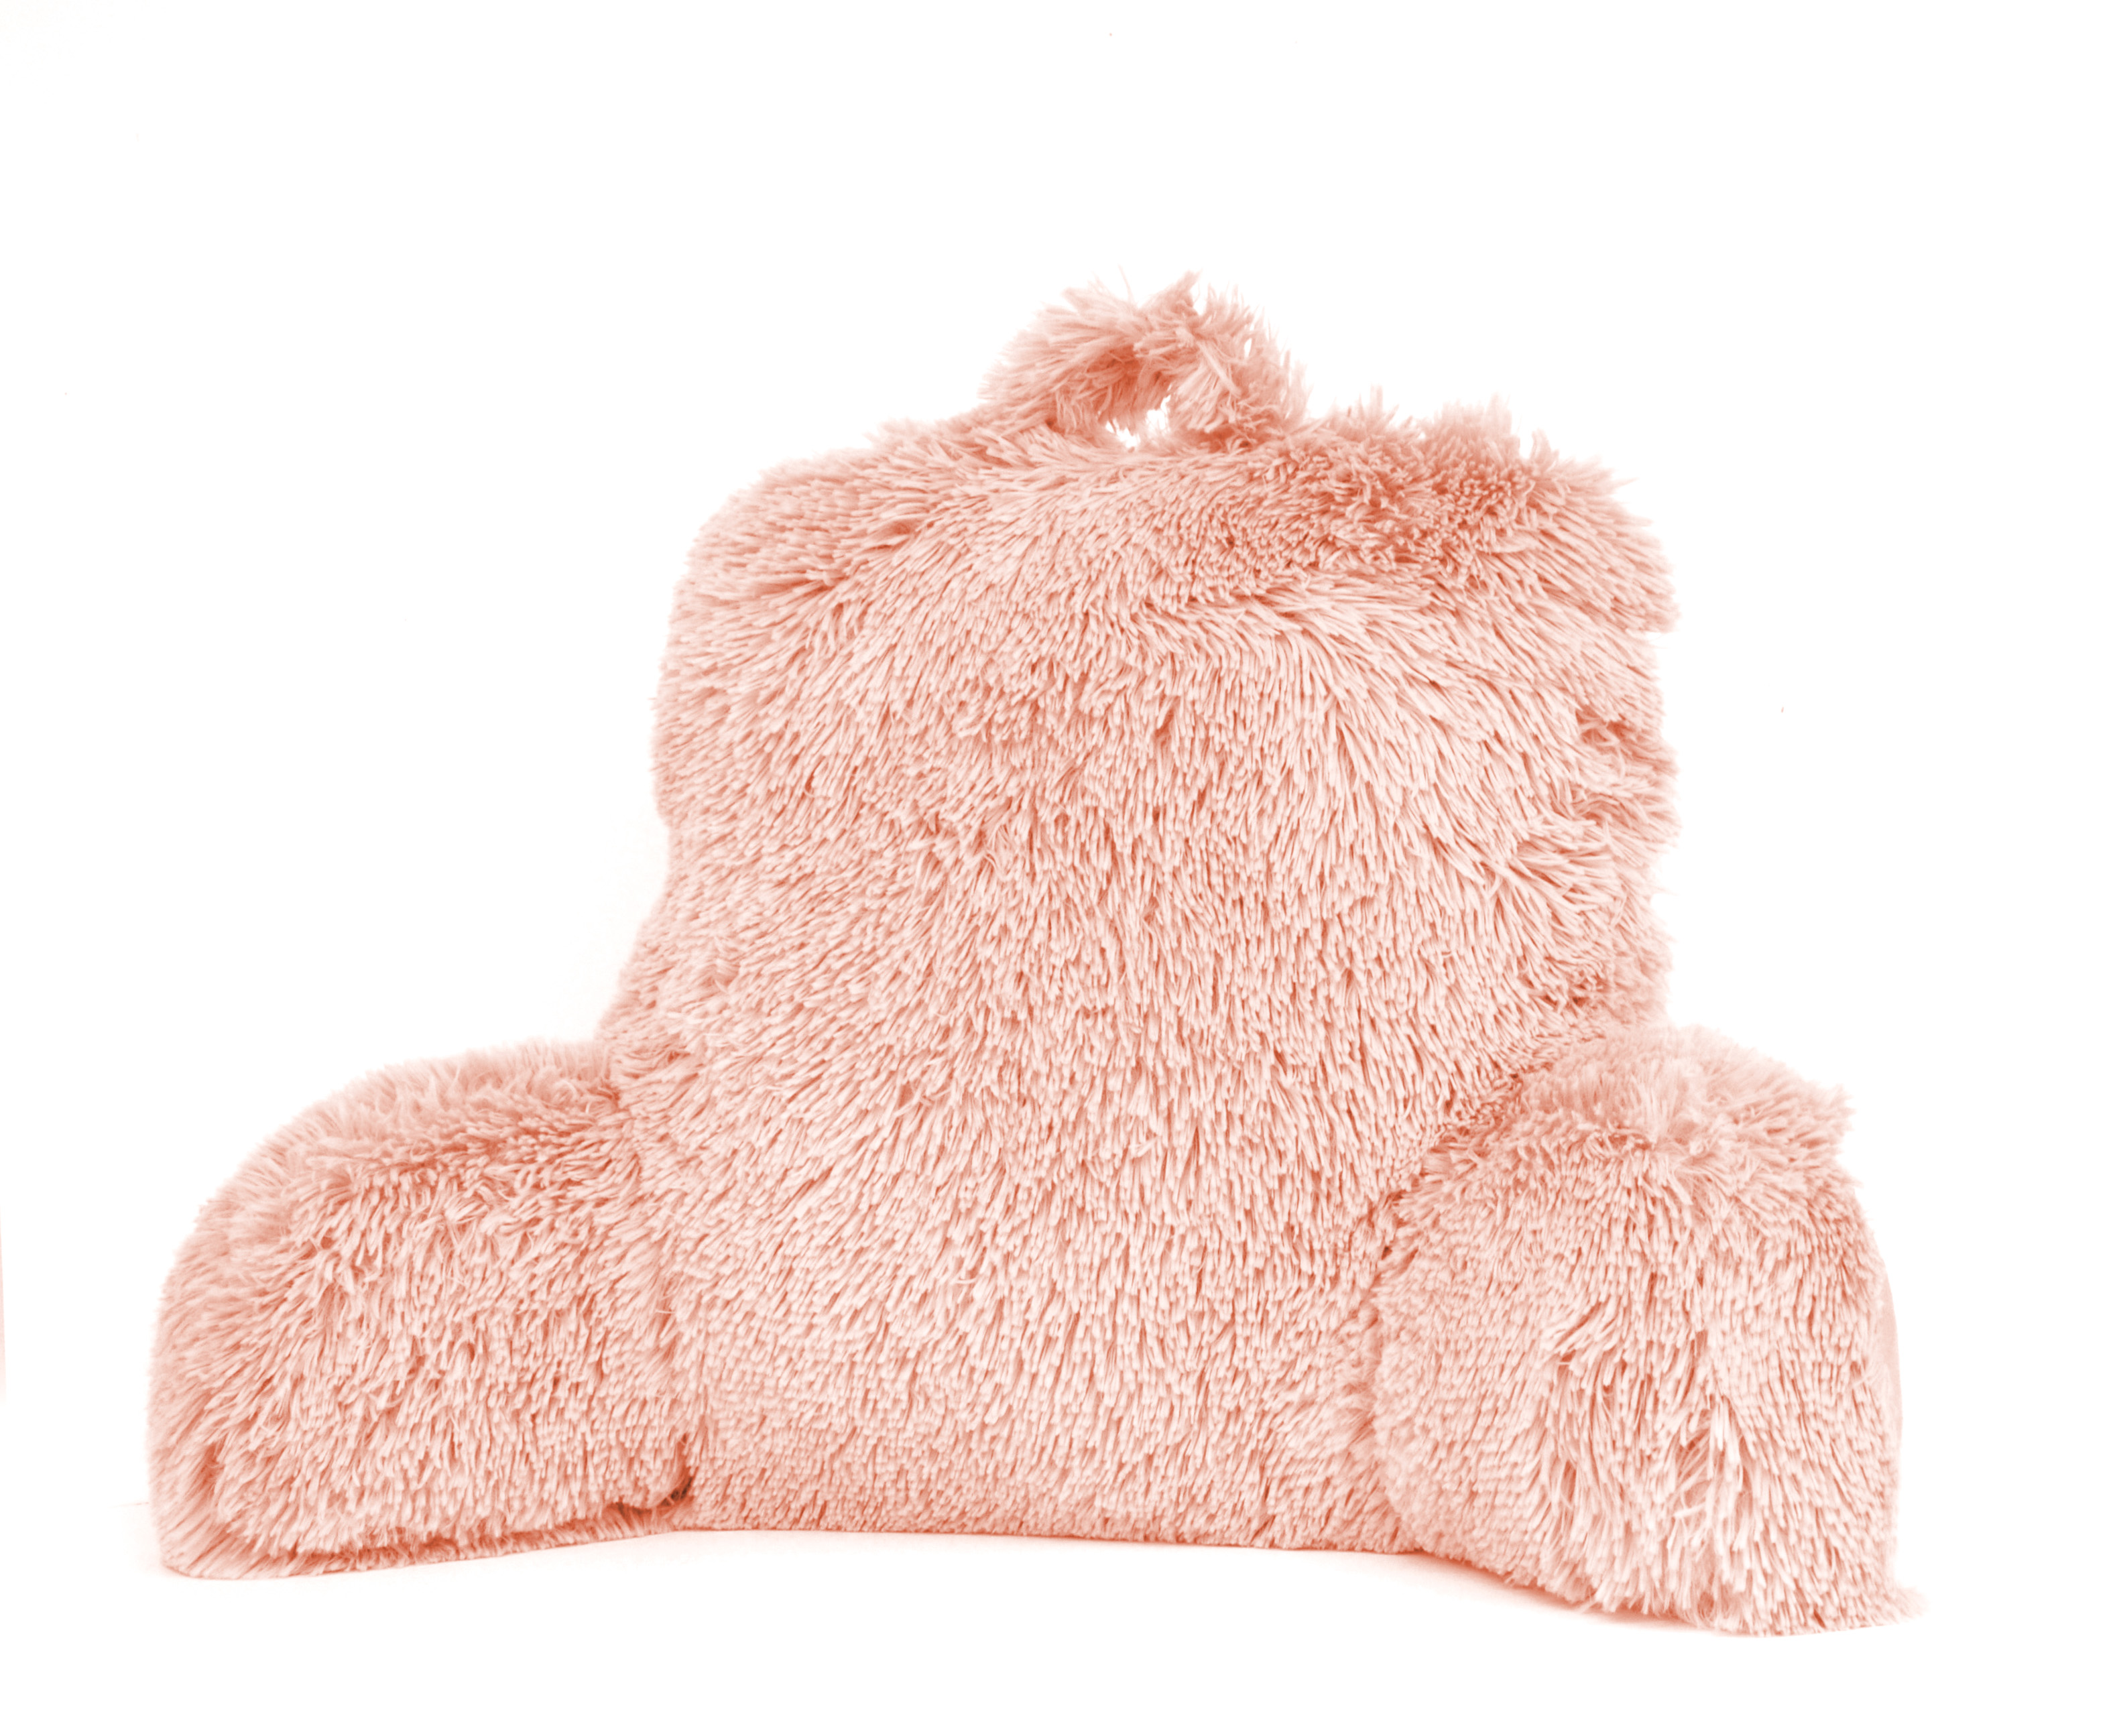 Mainstays Long Hair Faux Fur Backrest Pillow, Blush